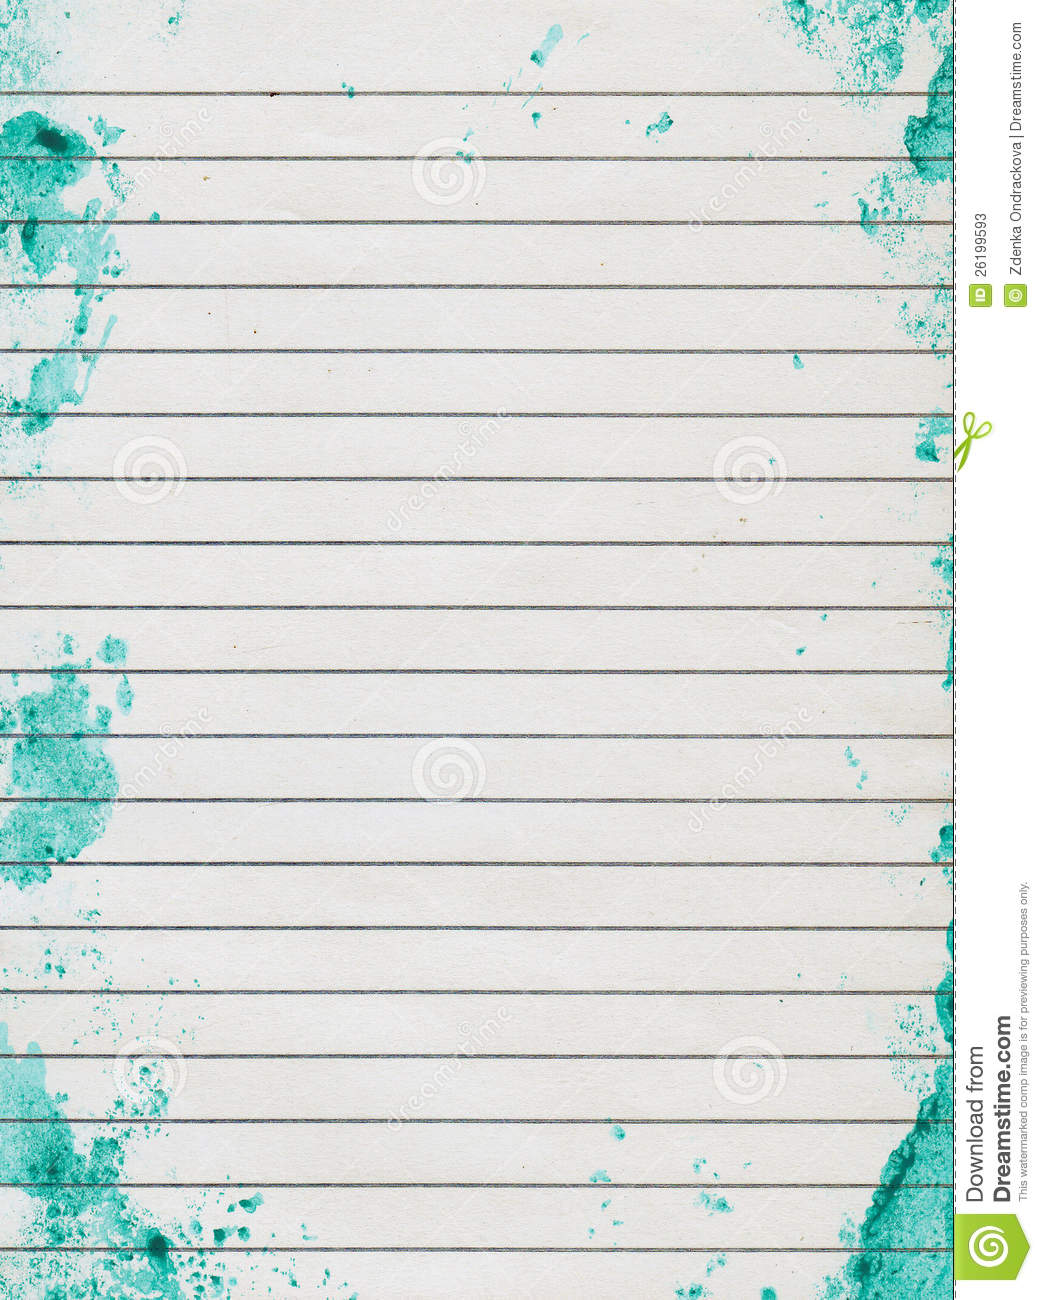 Wallpaper Lined Paper: Grunge Lined Paper Stock Image. Image Of Grunge